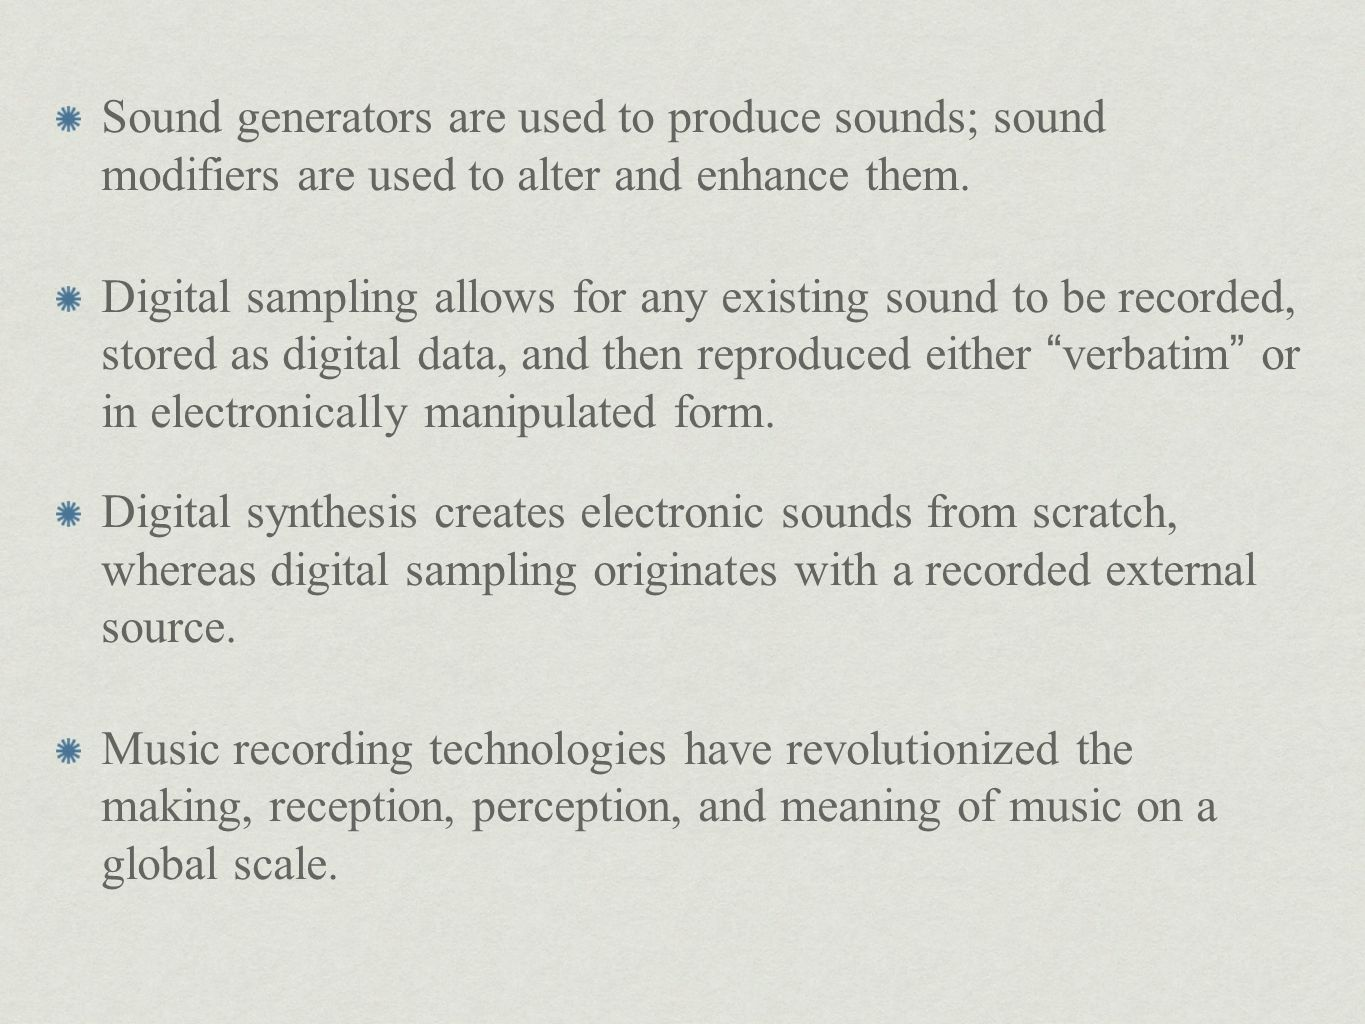 Sound generators are used to produce sounds; sound modifiers are used to alter and enhance them.